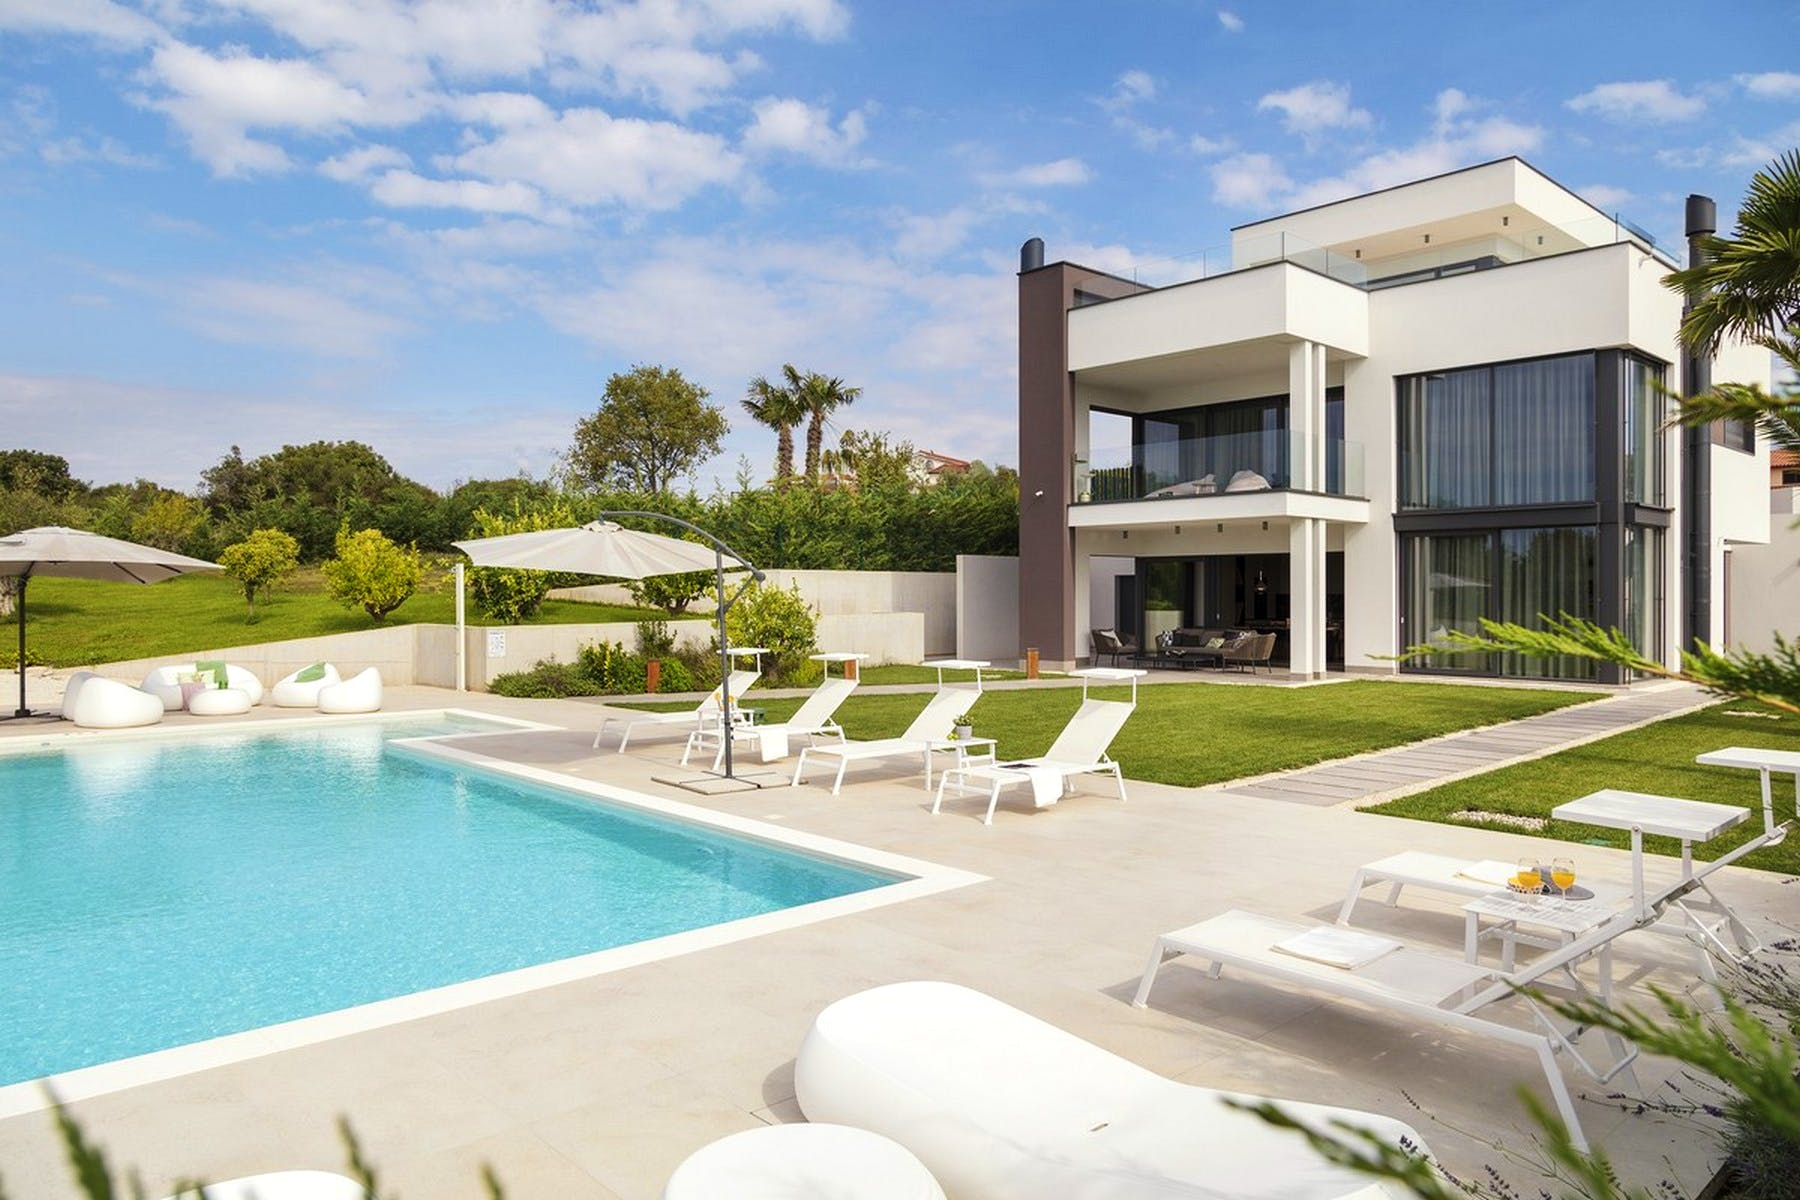 Modern villa with a swimming pool